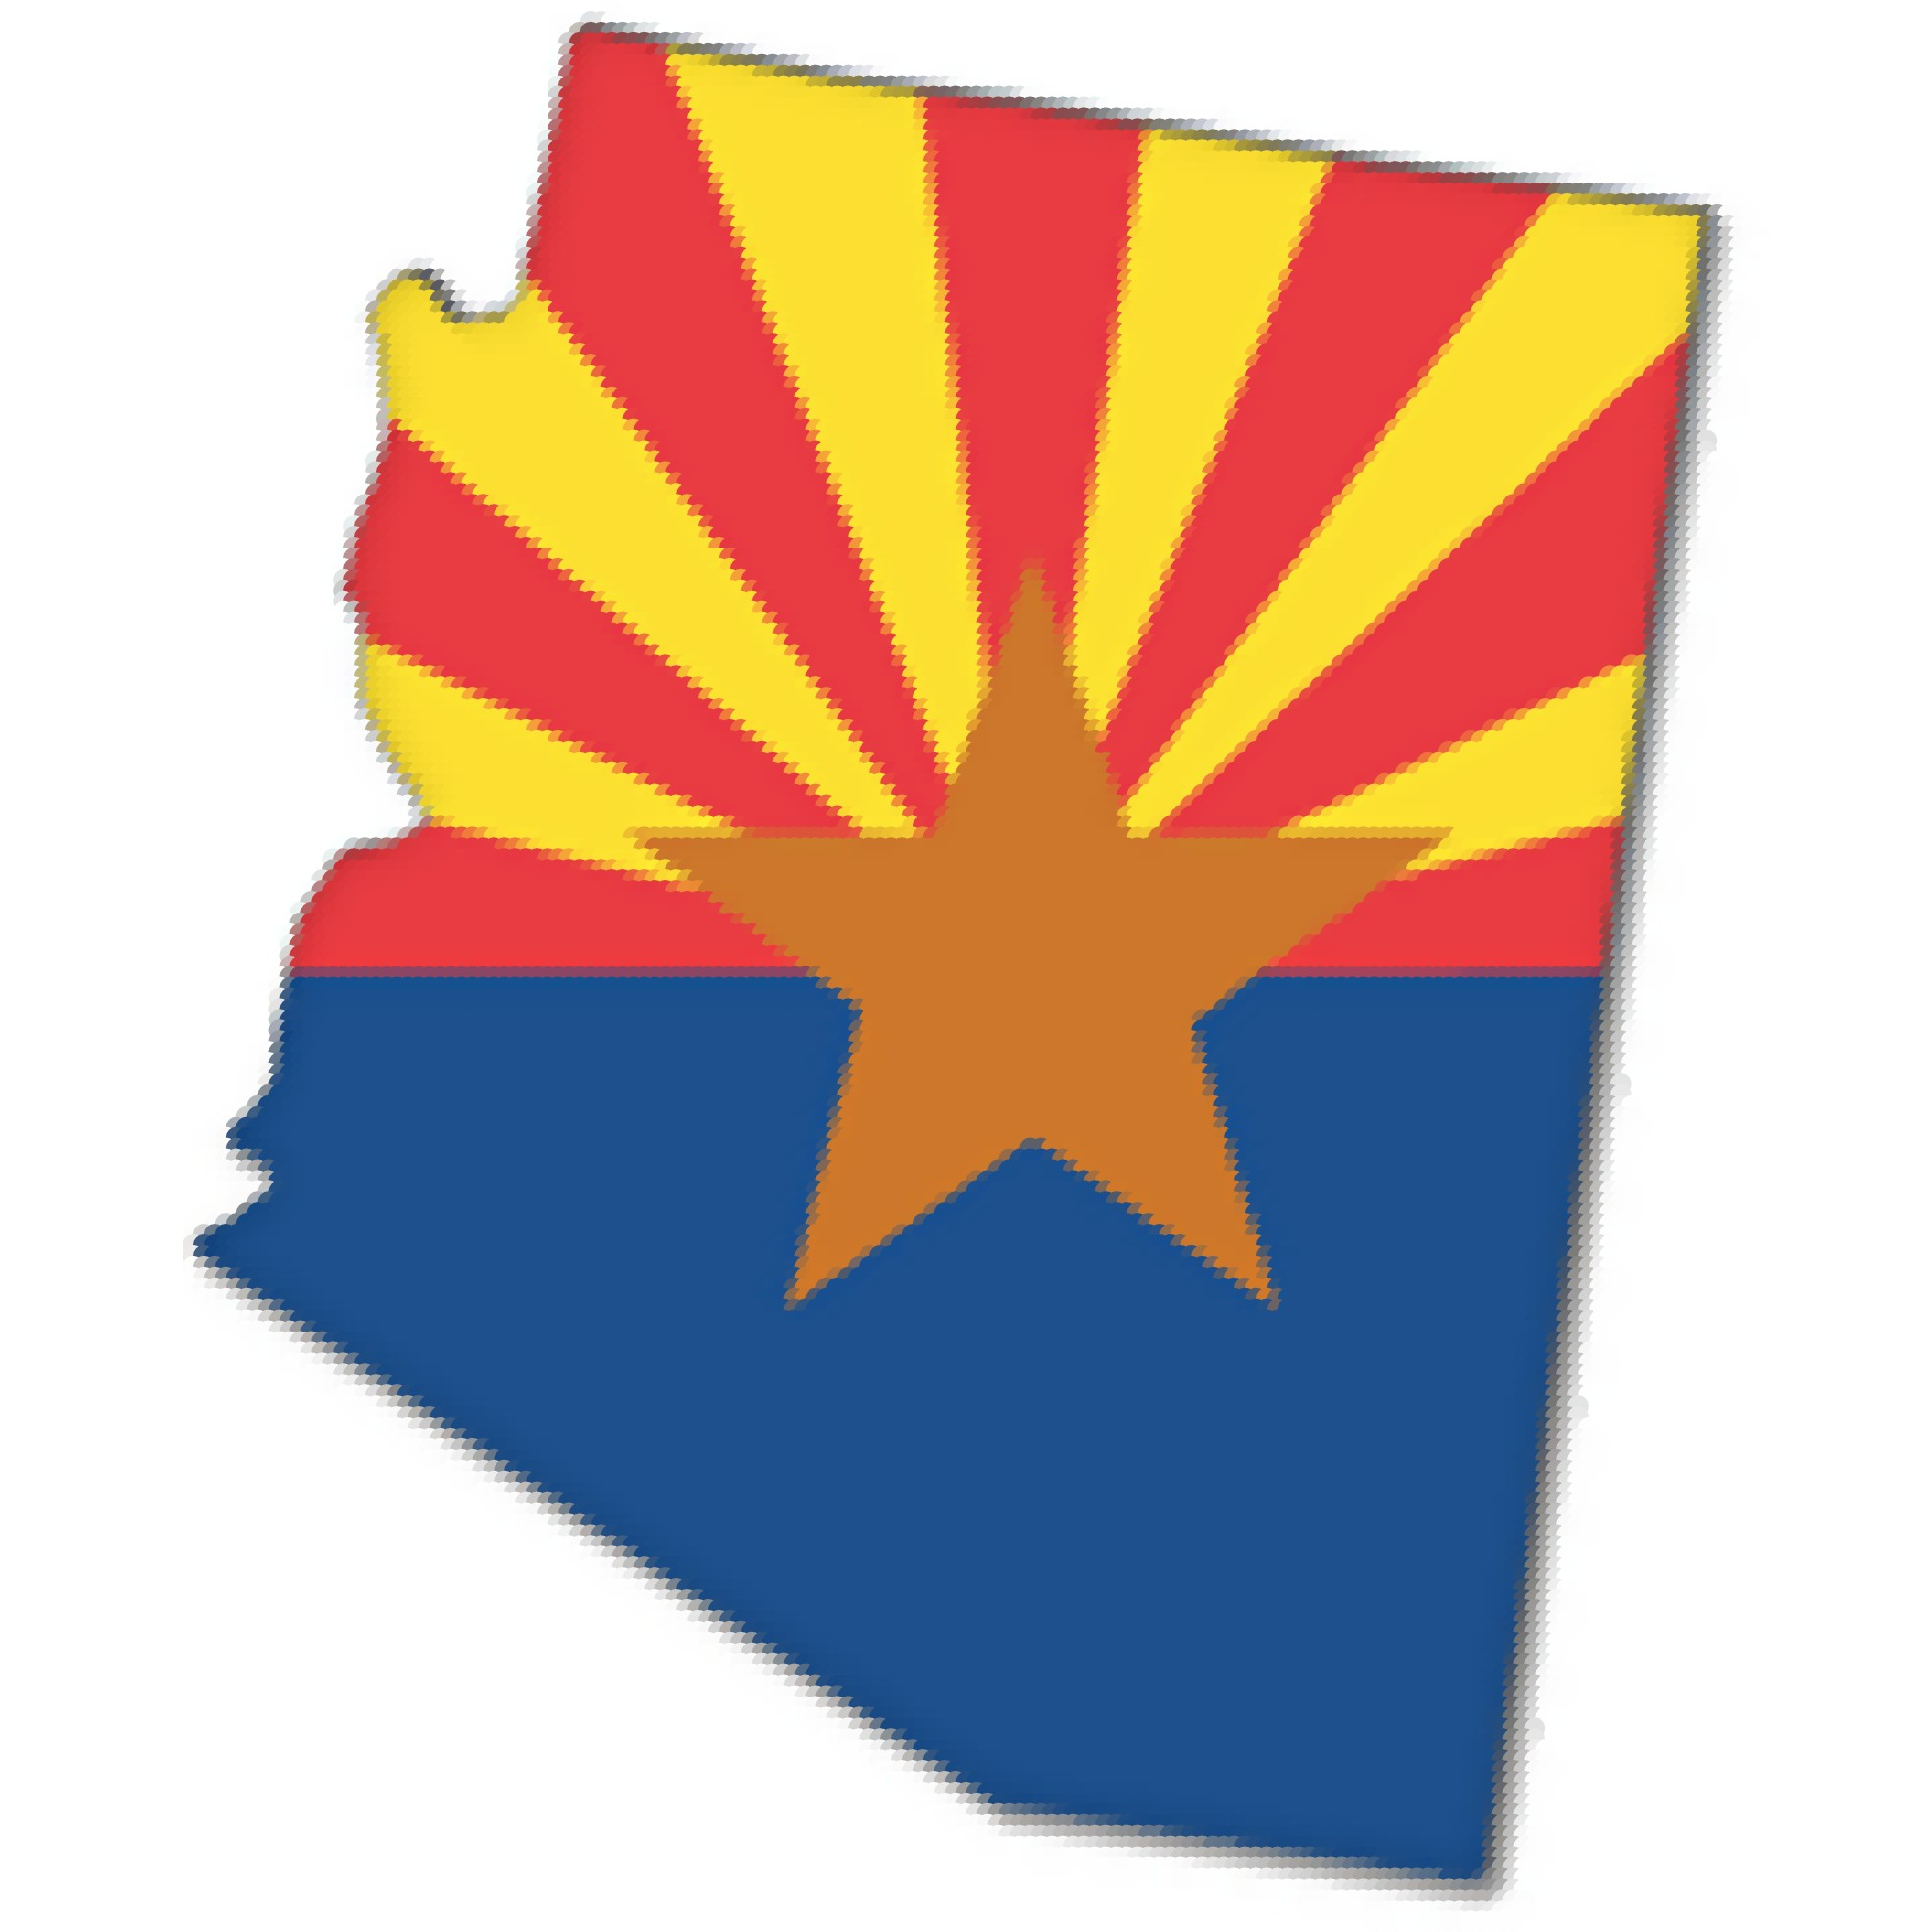 homeschooling Arizona